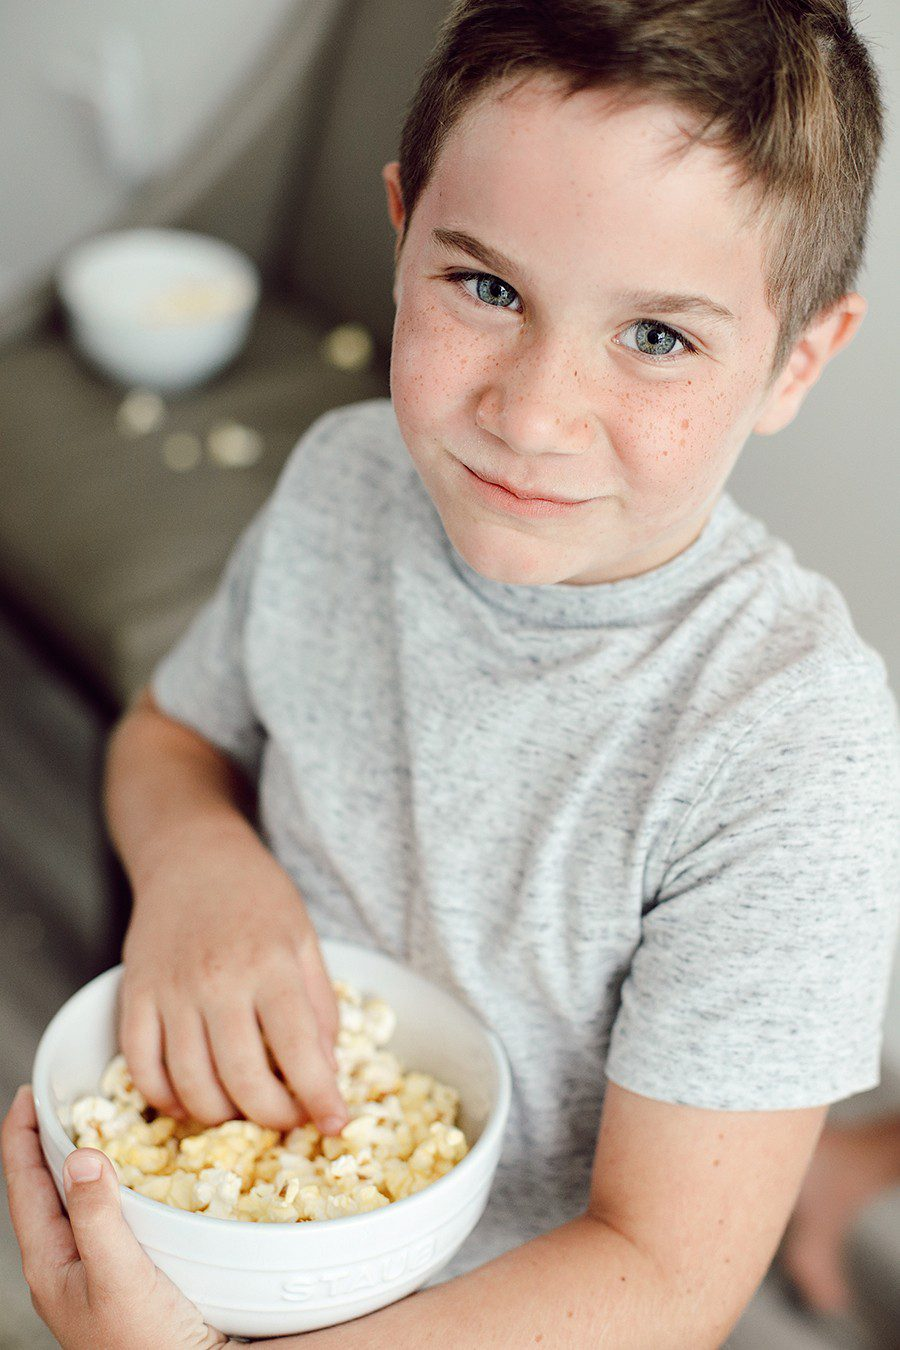 10 Popcorn Games for a Great Family Fun Night | Family Fun Night by popular Florida lifestyle blog, Fresh Mommy Blog: image of a young boy holding a bowl of popcorn.